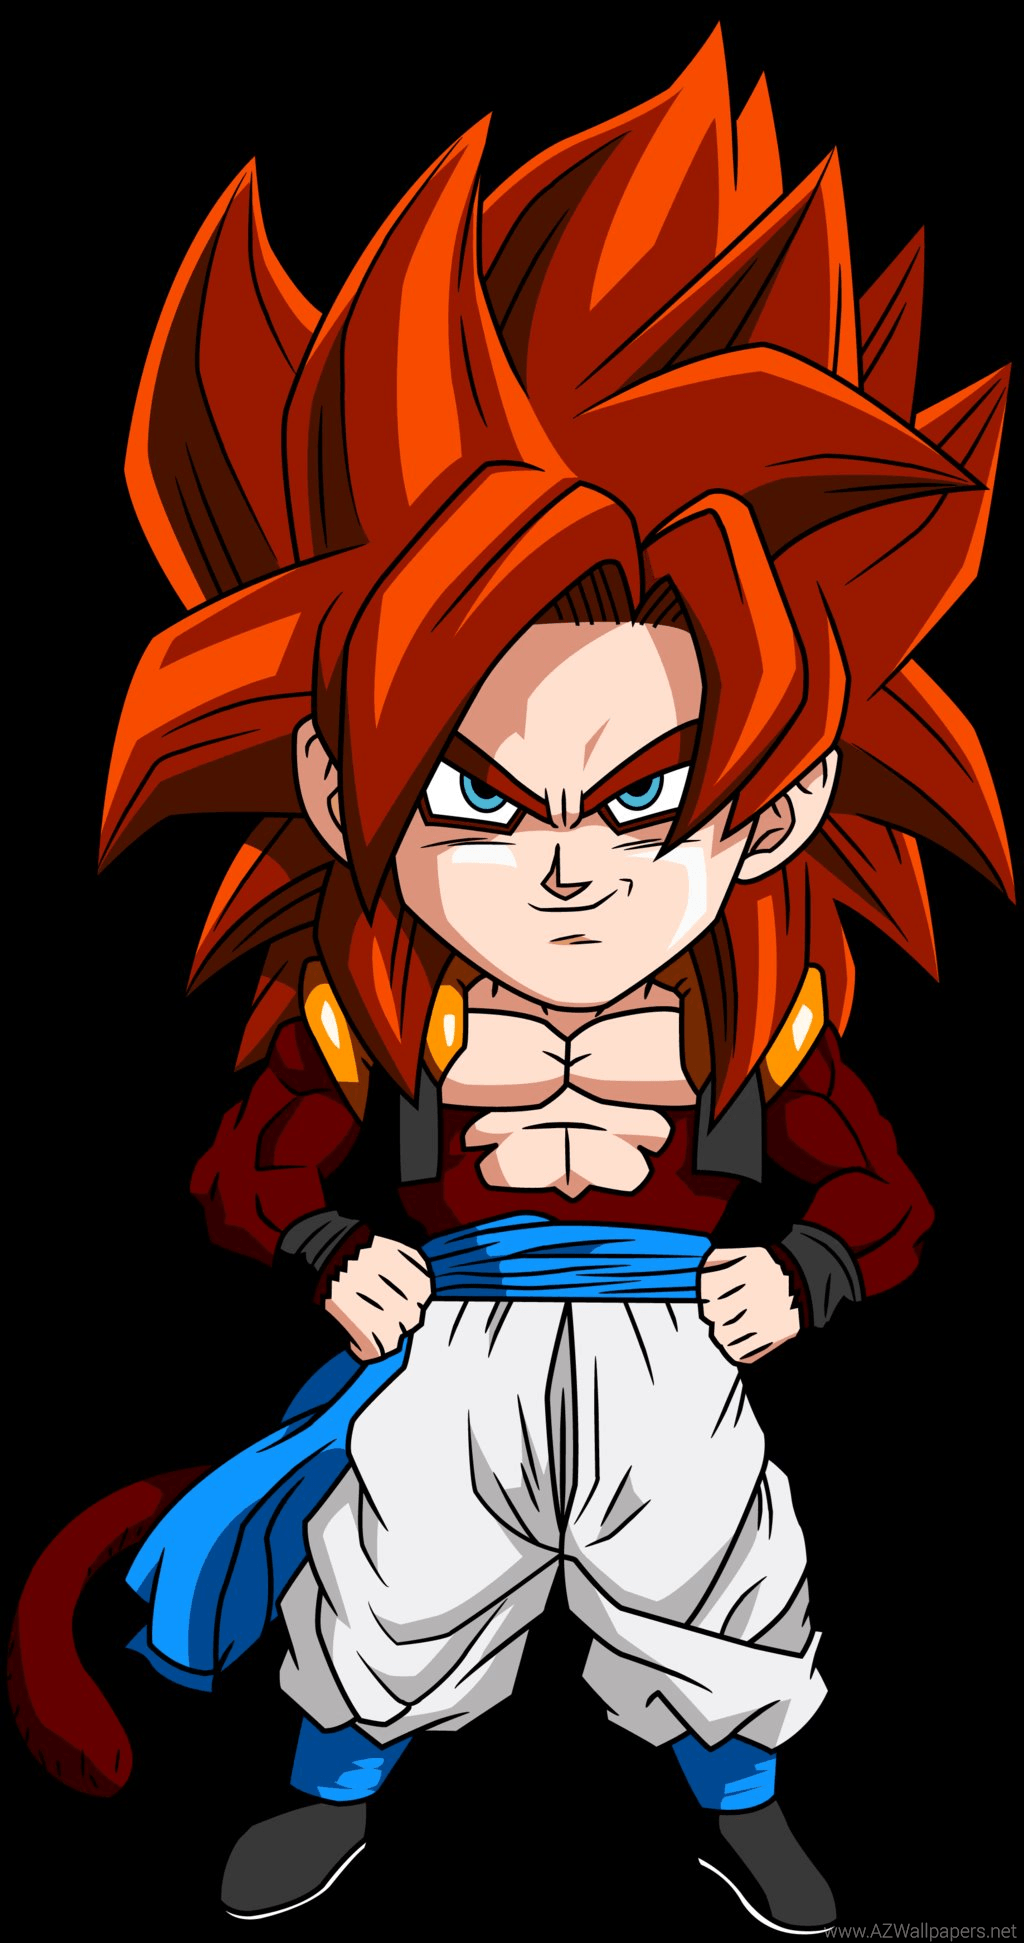 Wallpapers Hd Gogeta Ssj4 Wallpaper Cave